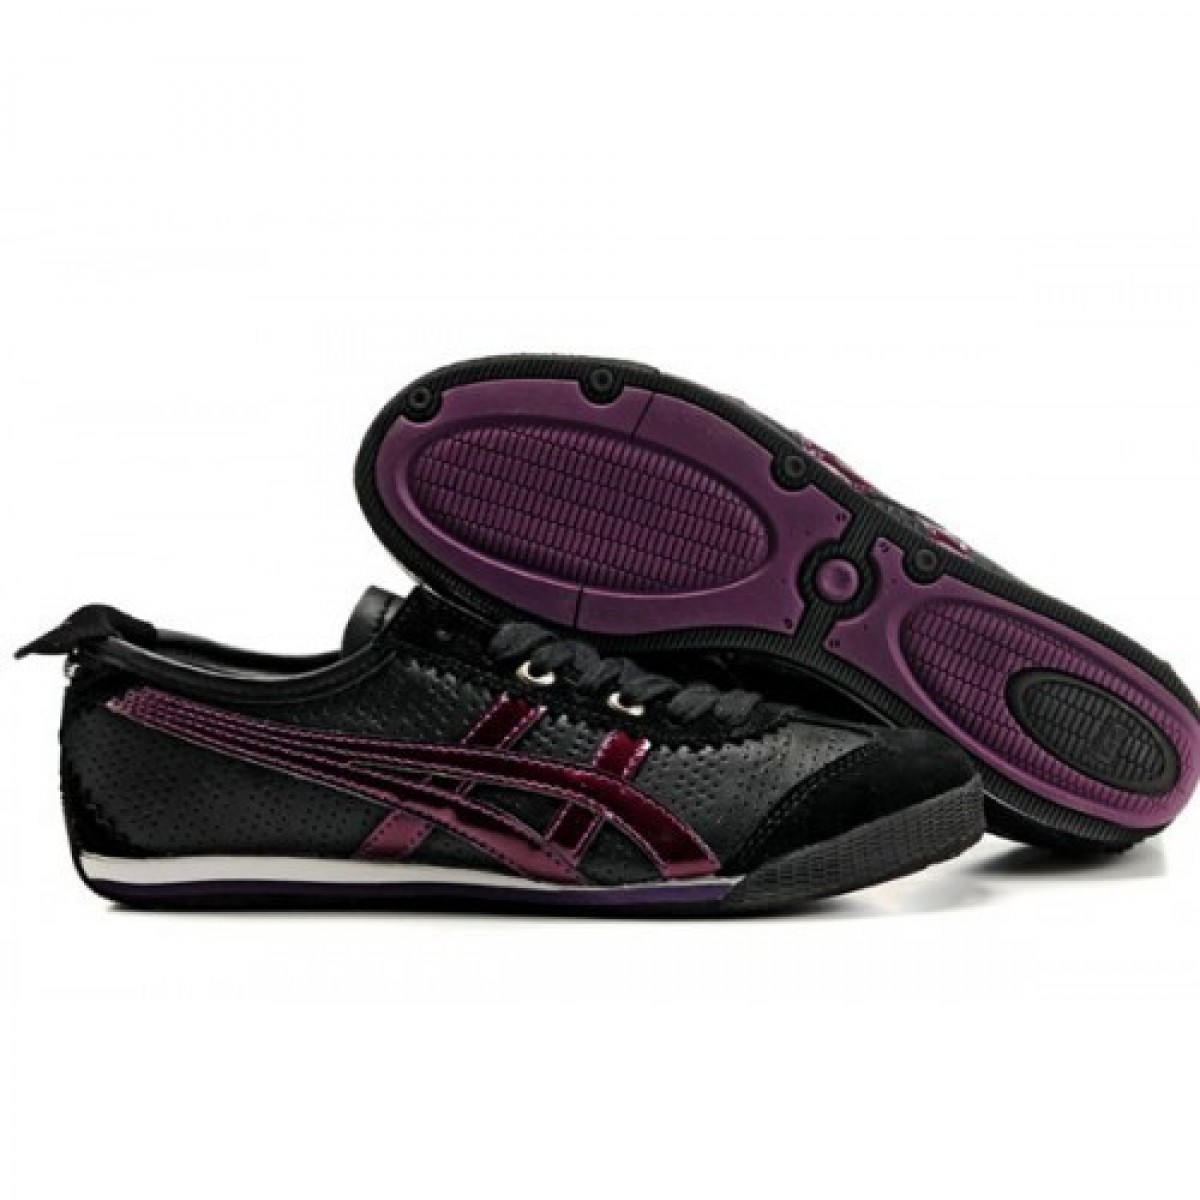 AS0646 Soldes Asics Onitsuka Tiger Mini Cooper Chaussures Noir Violet 15496238 Pas Cher